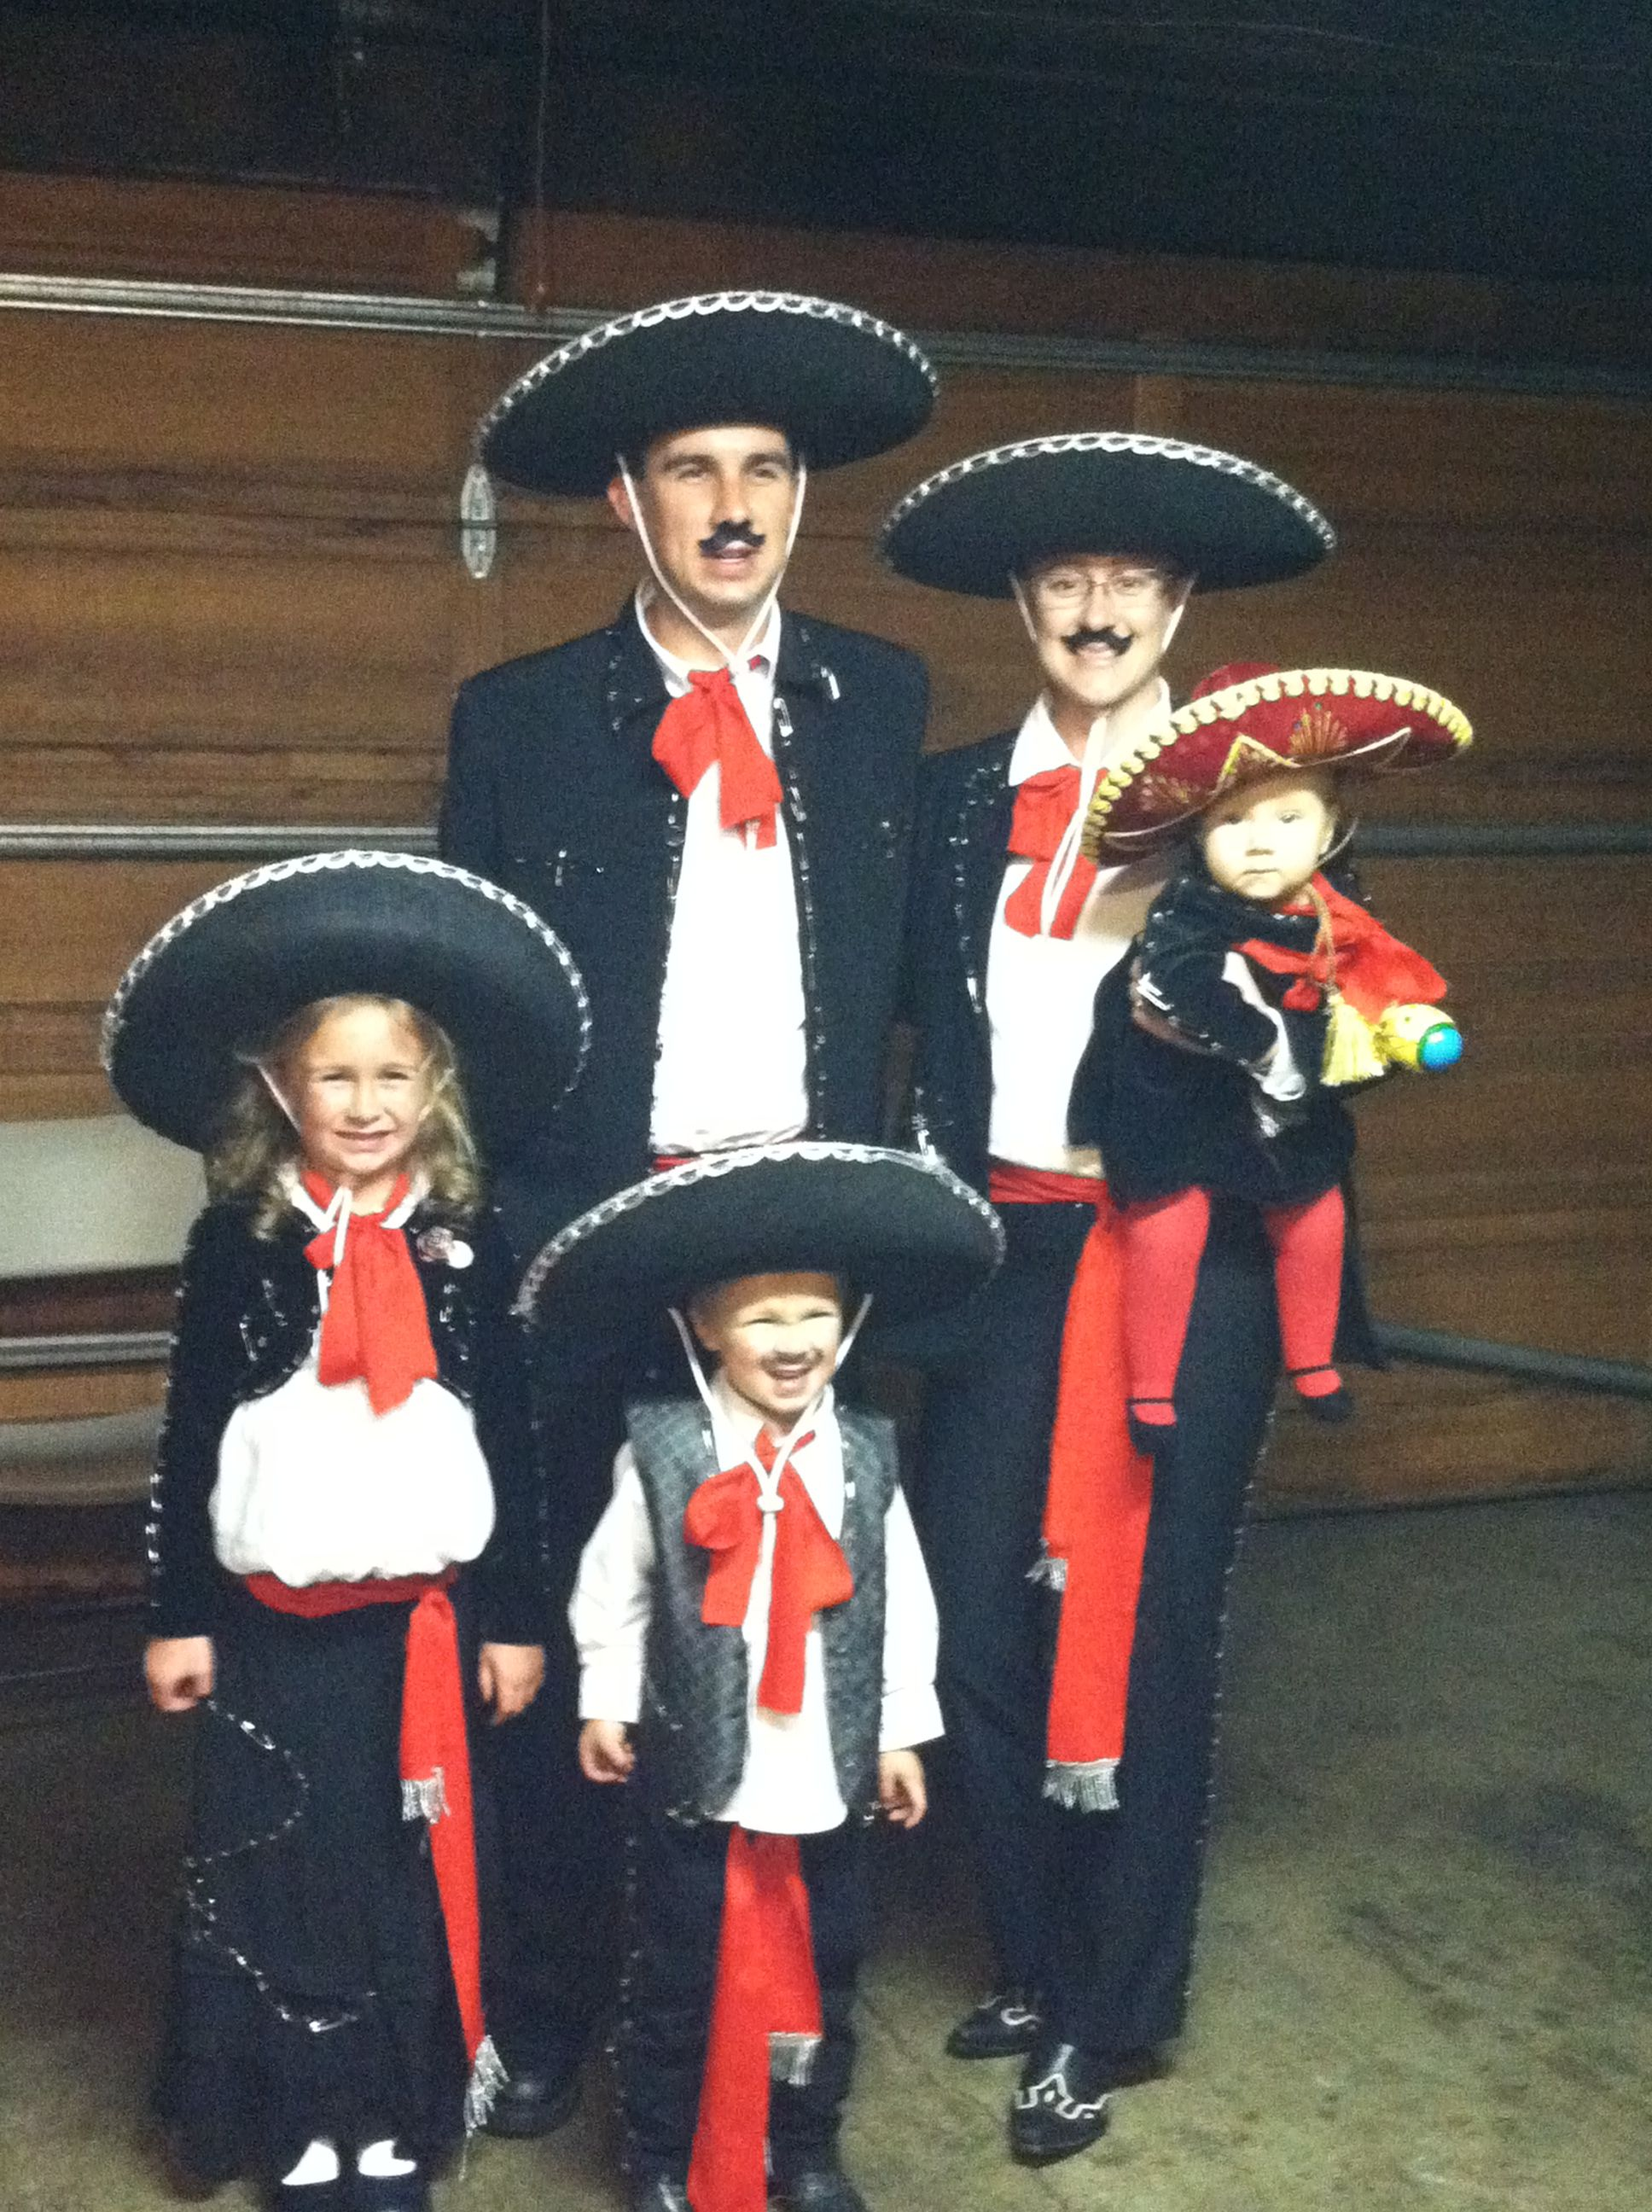 Family Mariachi Band Halloween Costumes...ole! Things We